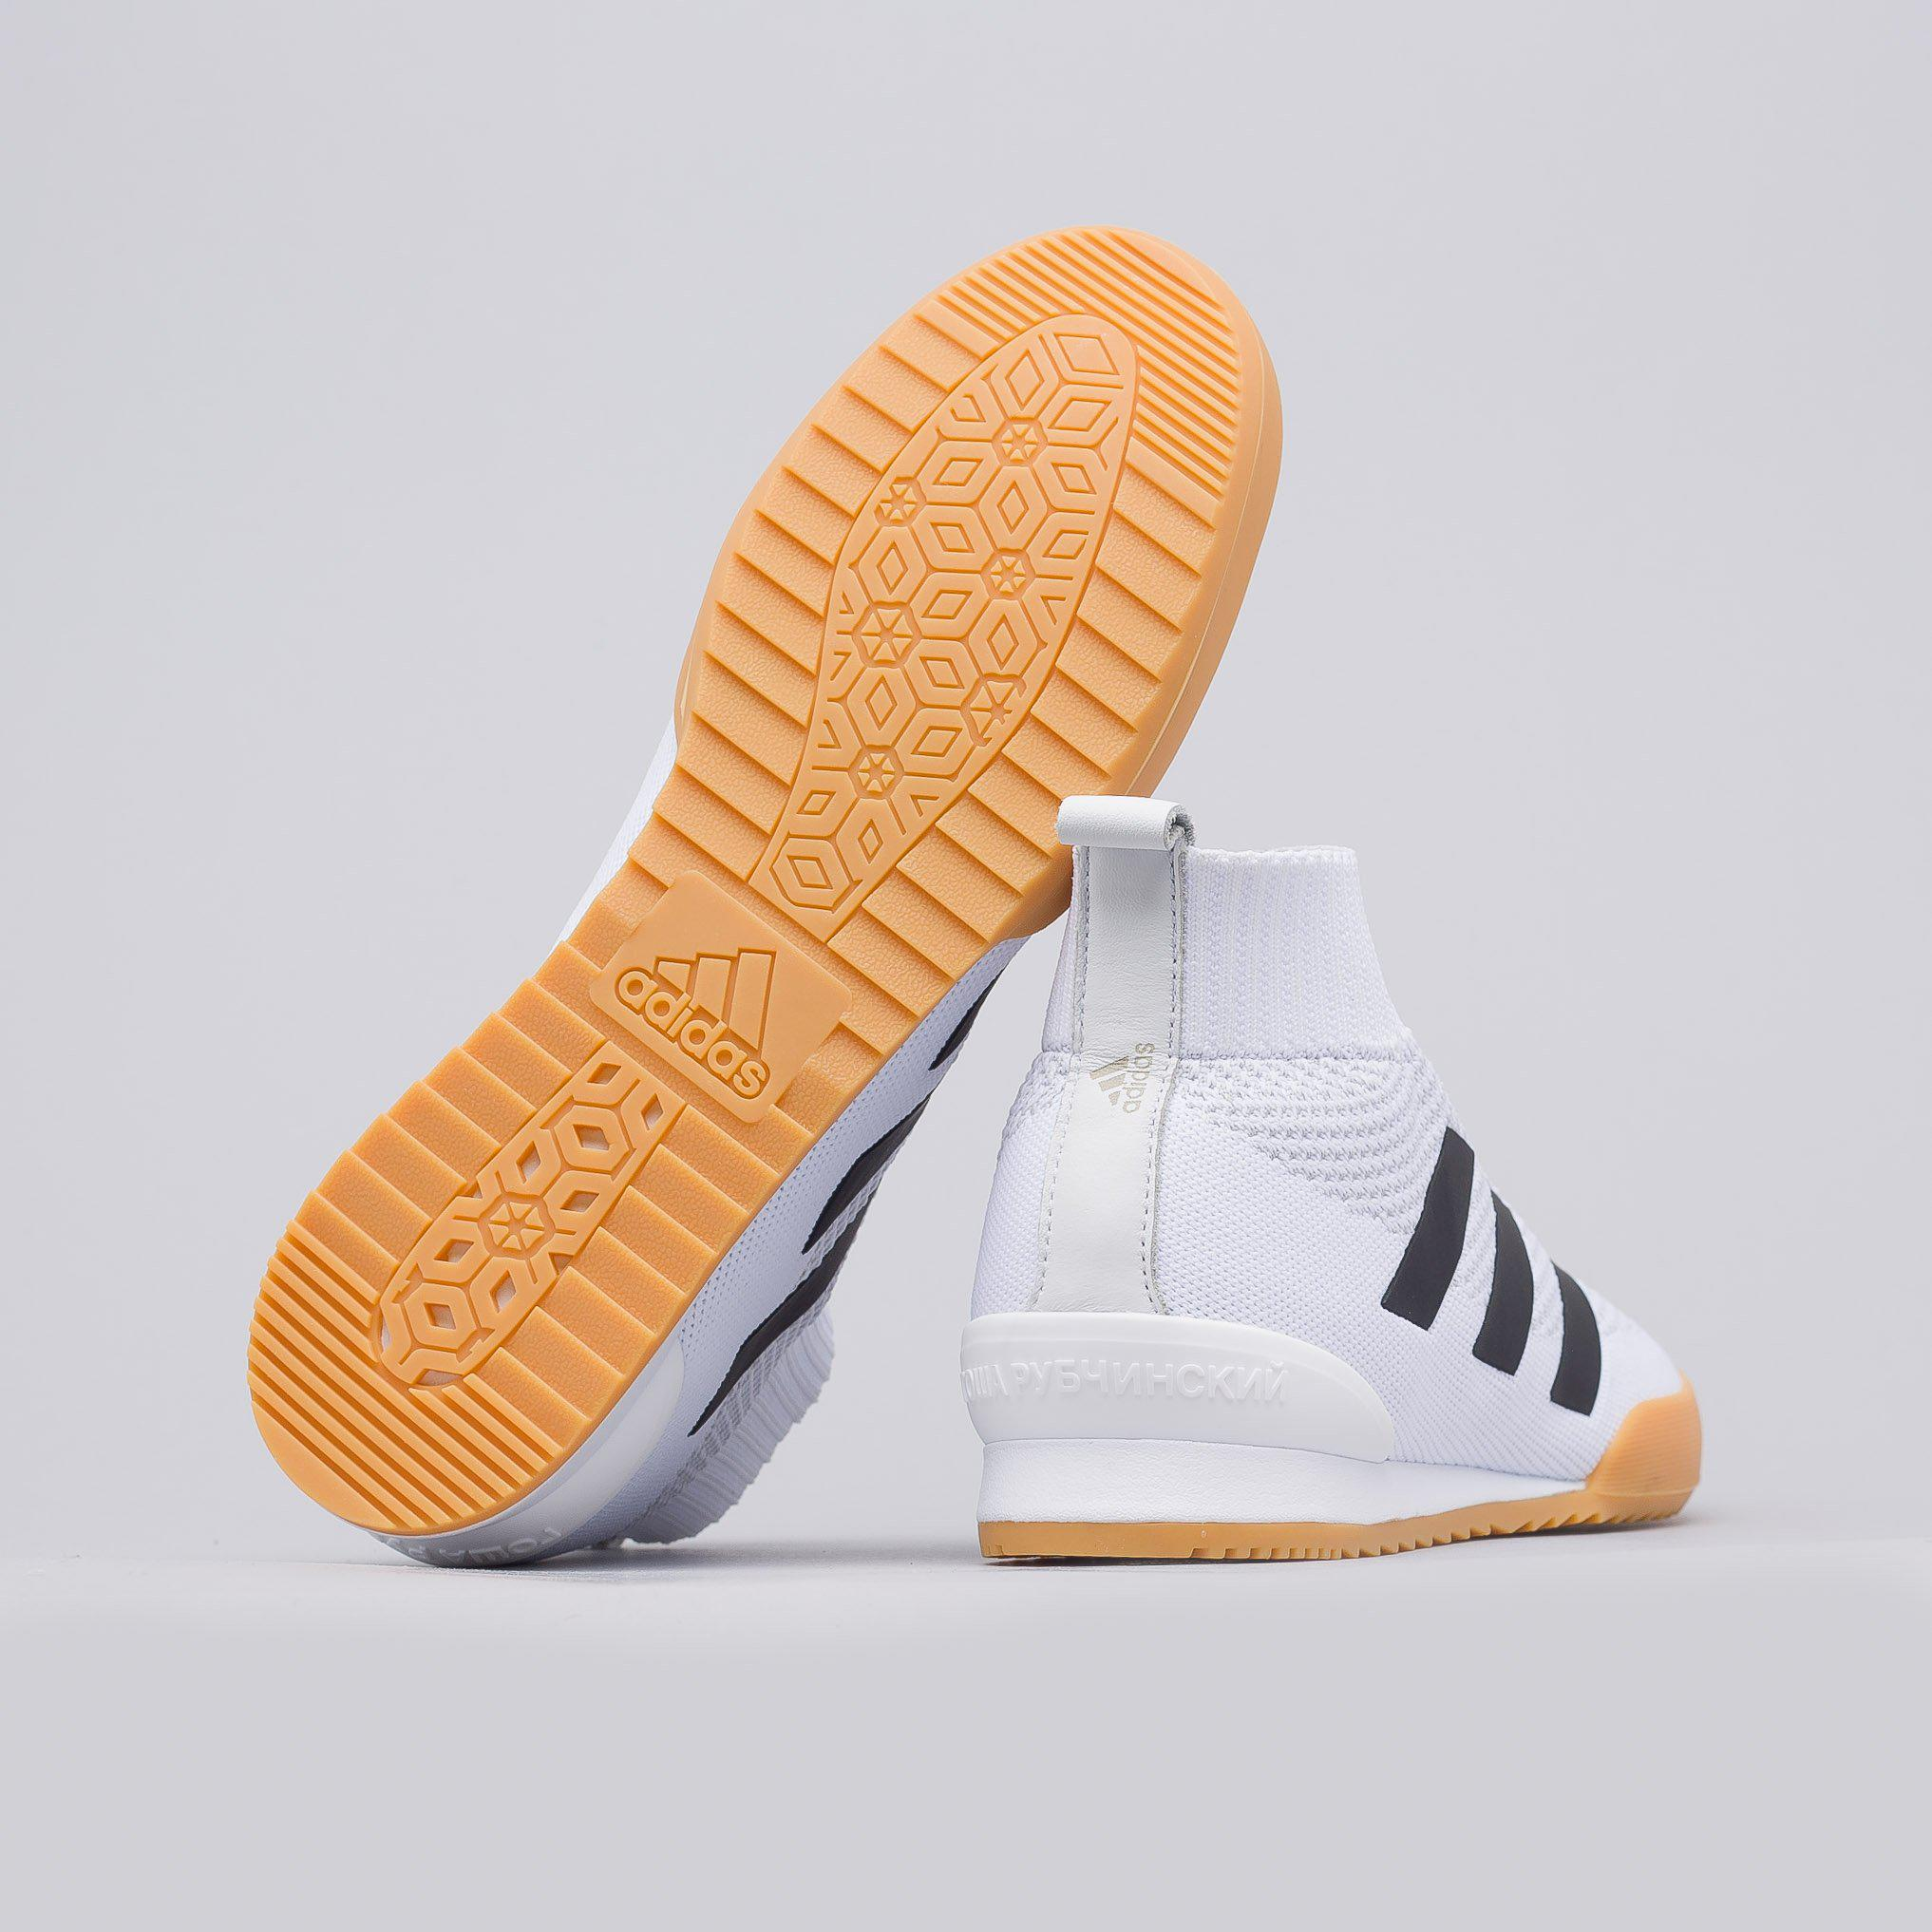 on sale 913a4 fdf07 Men's X Adidas Ace Super Shoes In White